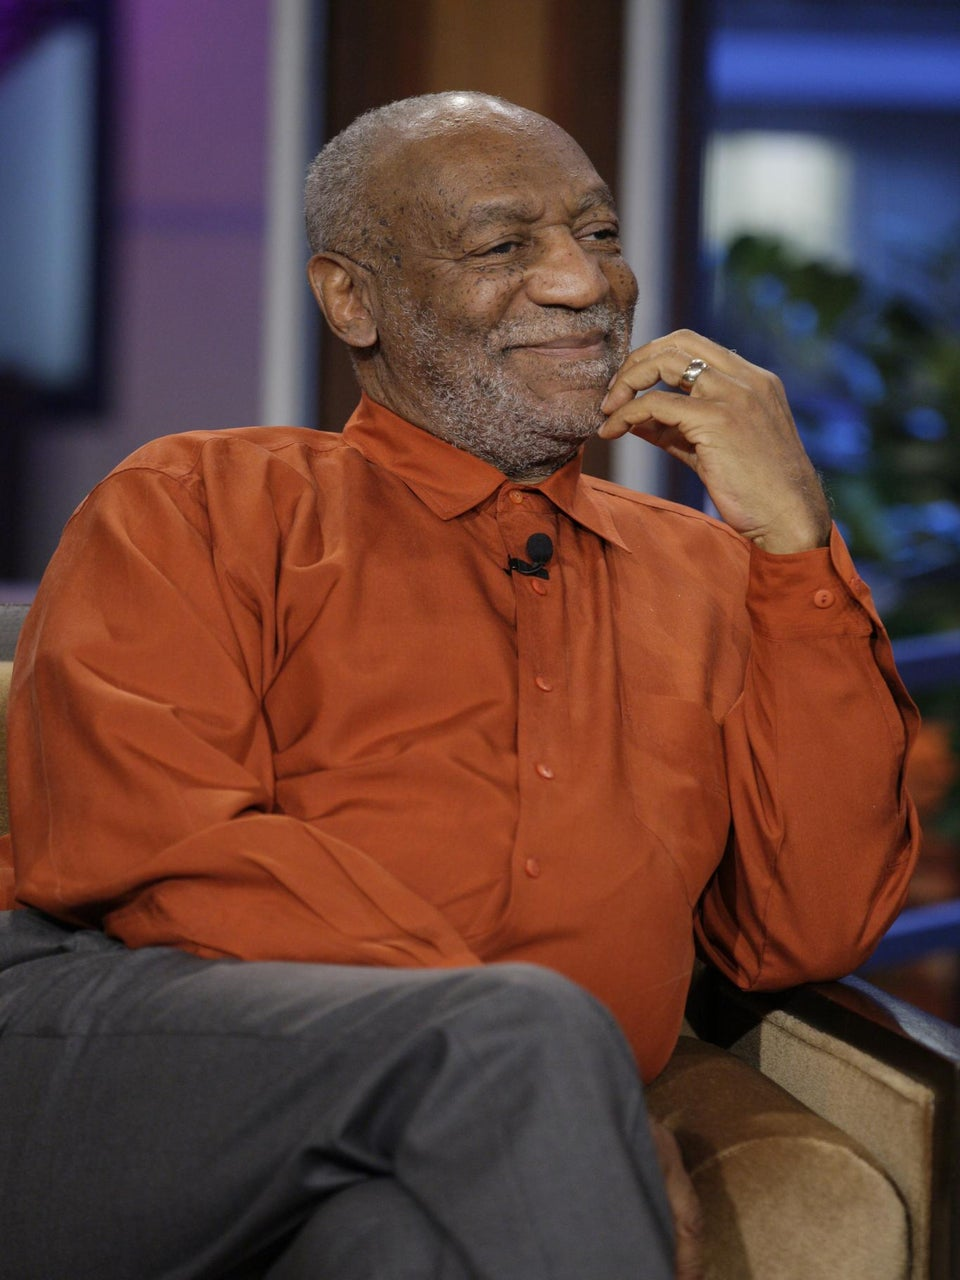 Bill Cosby to Return to TV with New Sitcom